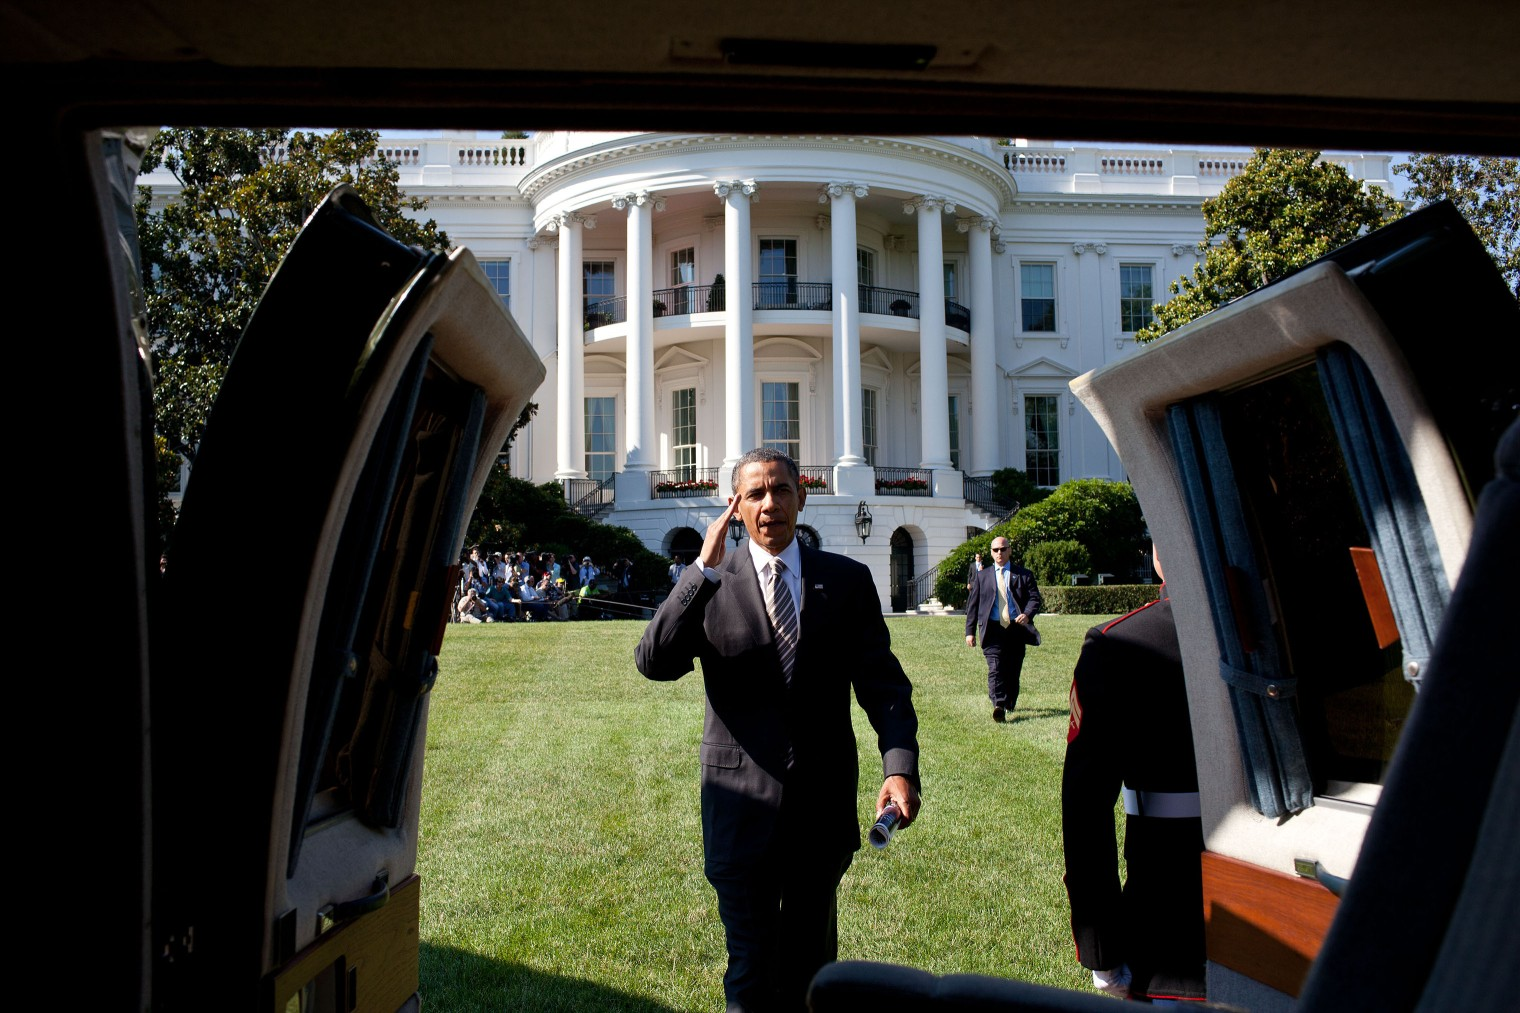 President Obama boards Marine One on the South Lawn of the White House, on July 1, 2011.